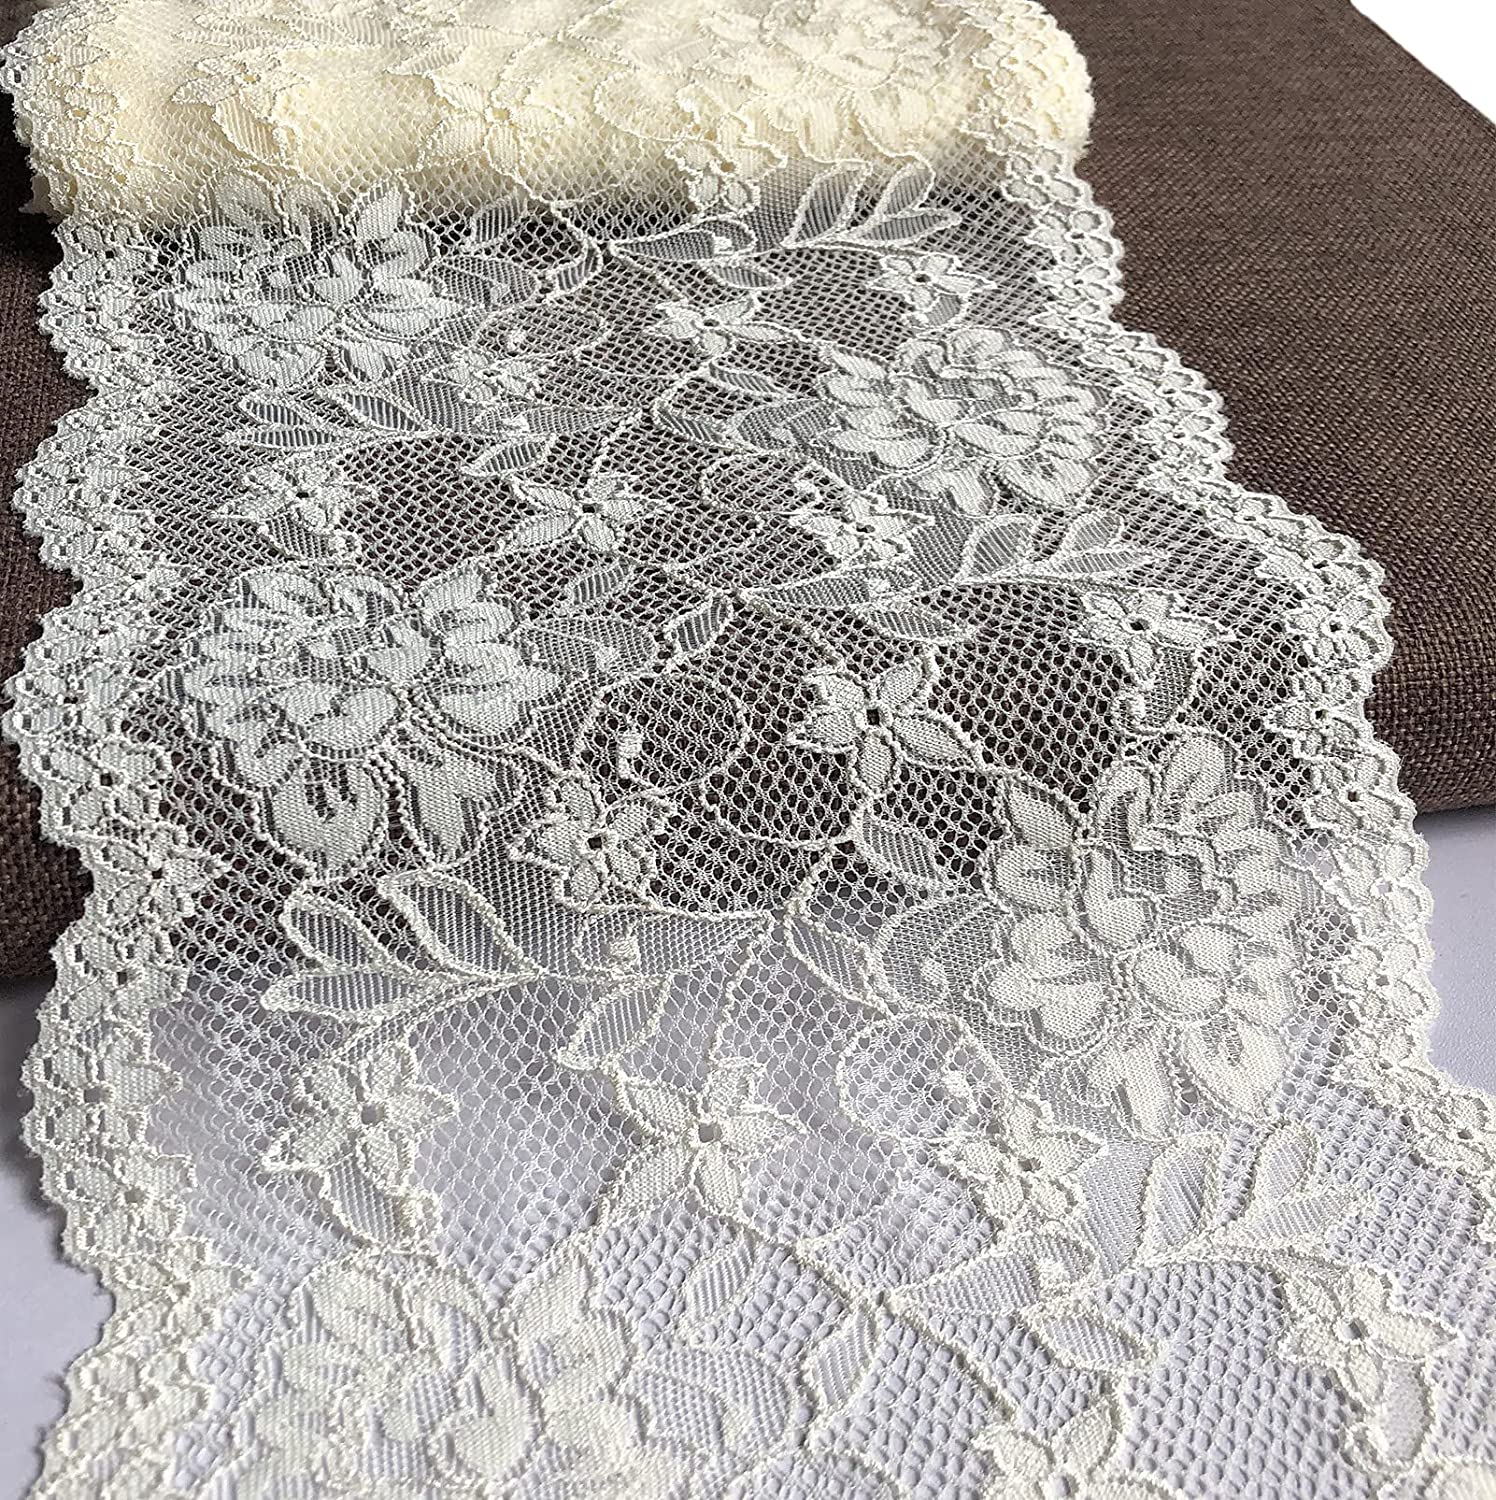 Olive Max 55% OFF Lace 7 inches Wide Stretchy Pattern Floral with for lace B Bombing new work